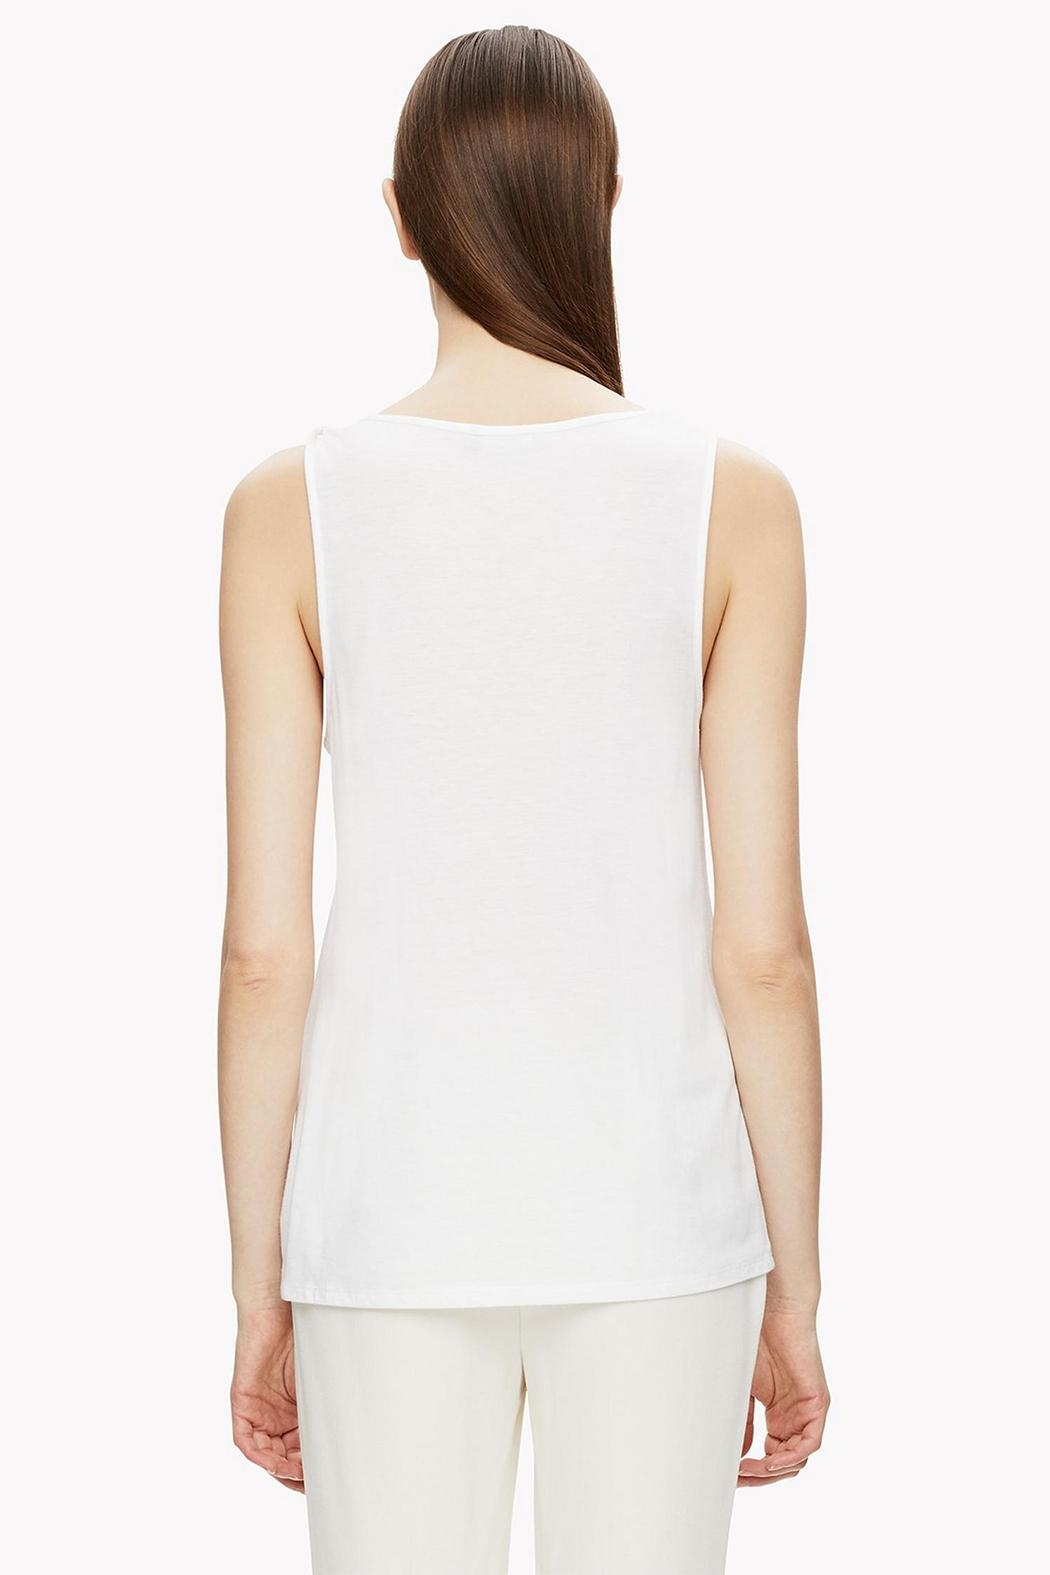 Theory Twisted Strap Tank Top - Front Full Image